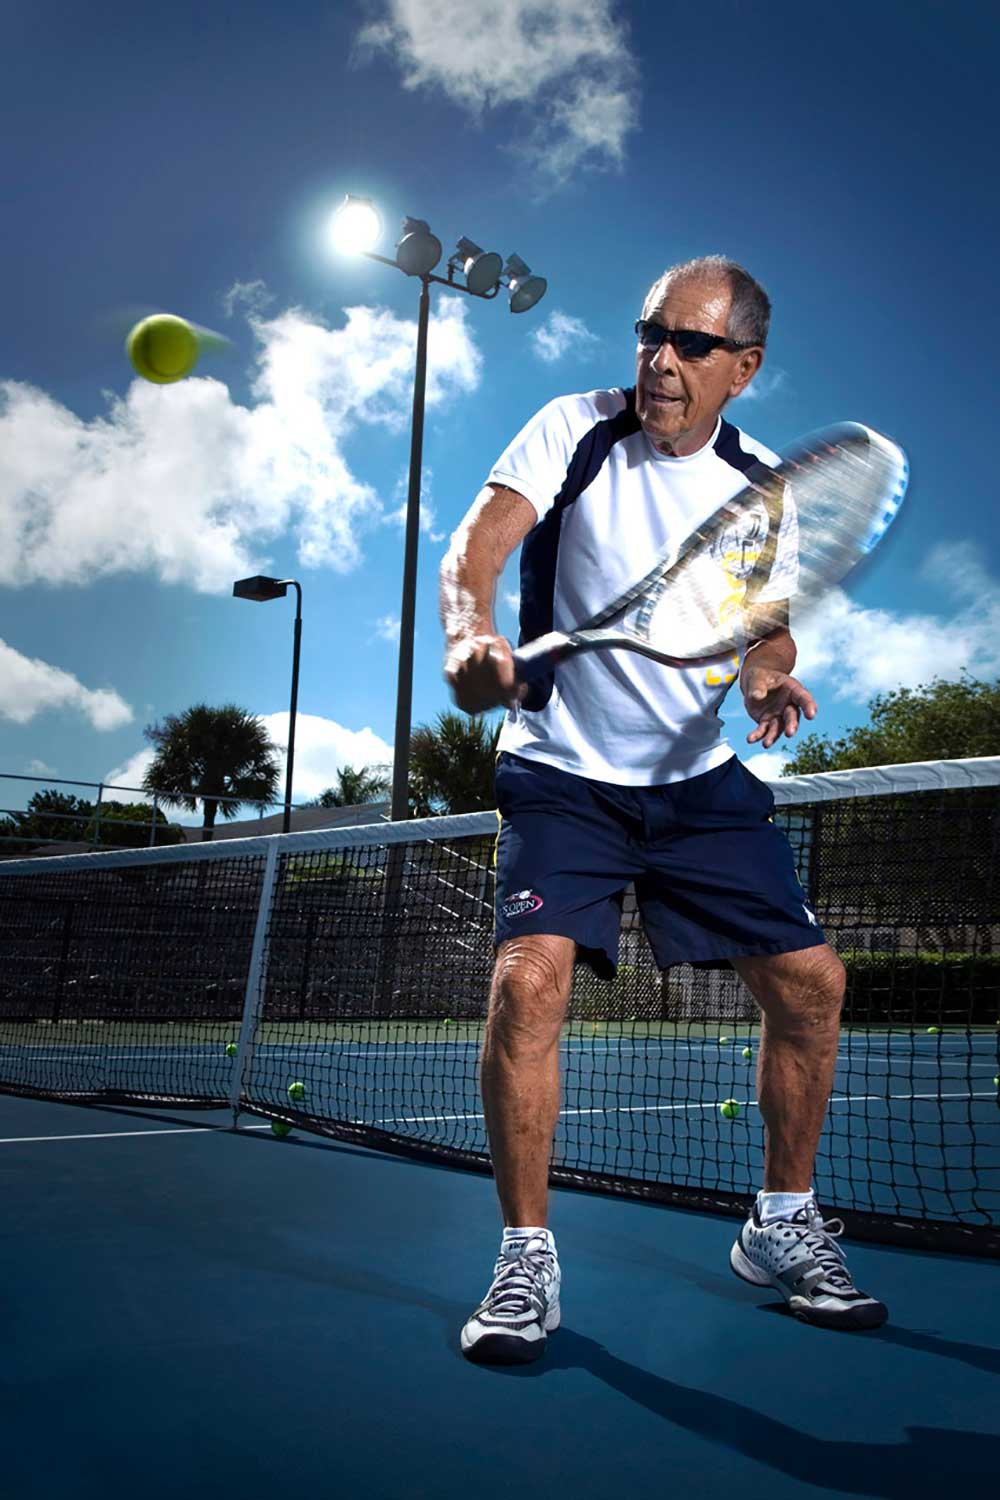 nick_bollettieri_01_web.jpg